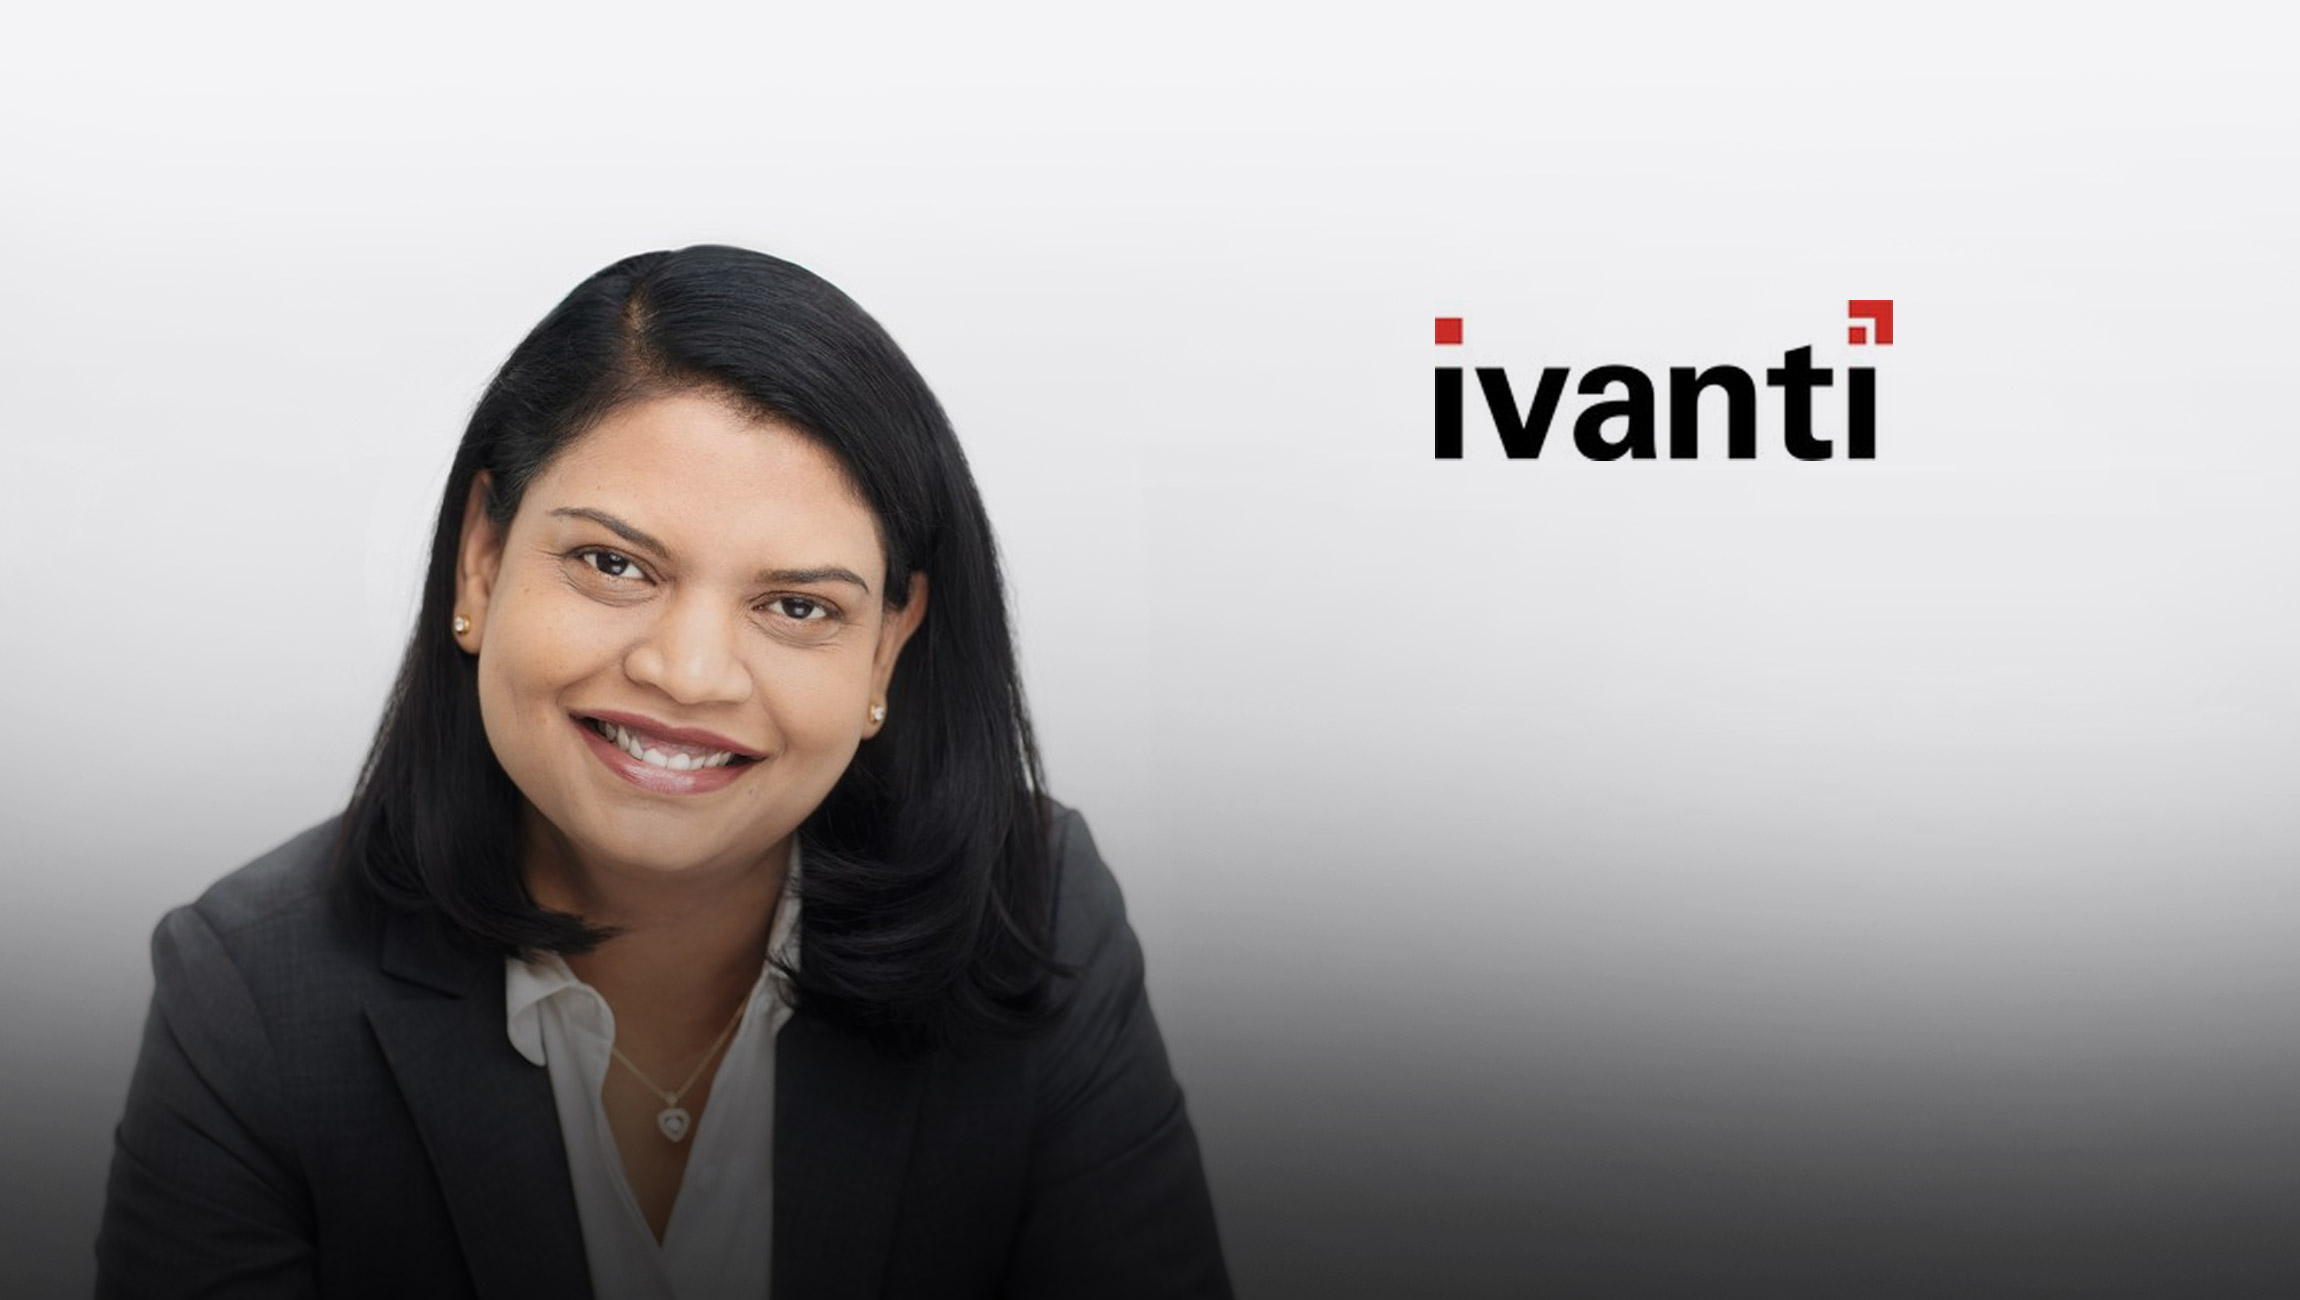 Ivanti Appoints Nayaki Nayyar as Executive Vice President and Chief Product Officer